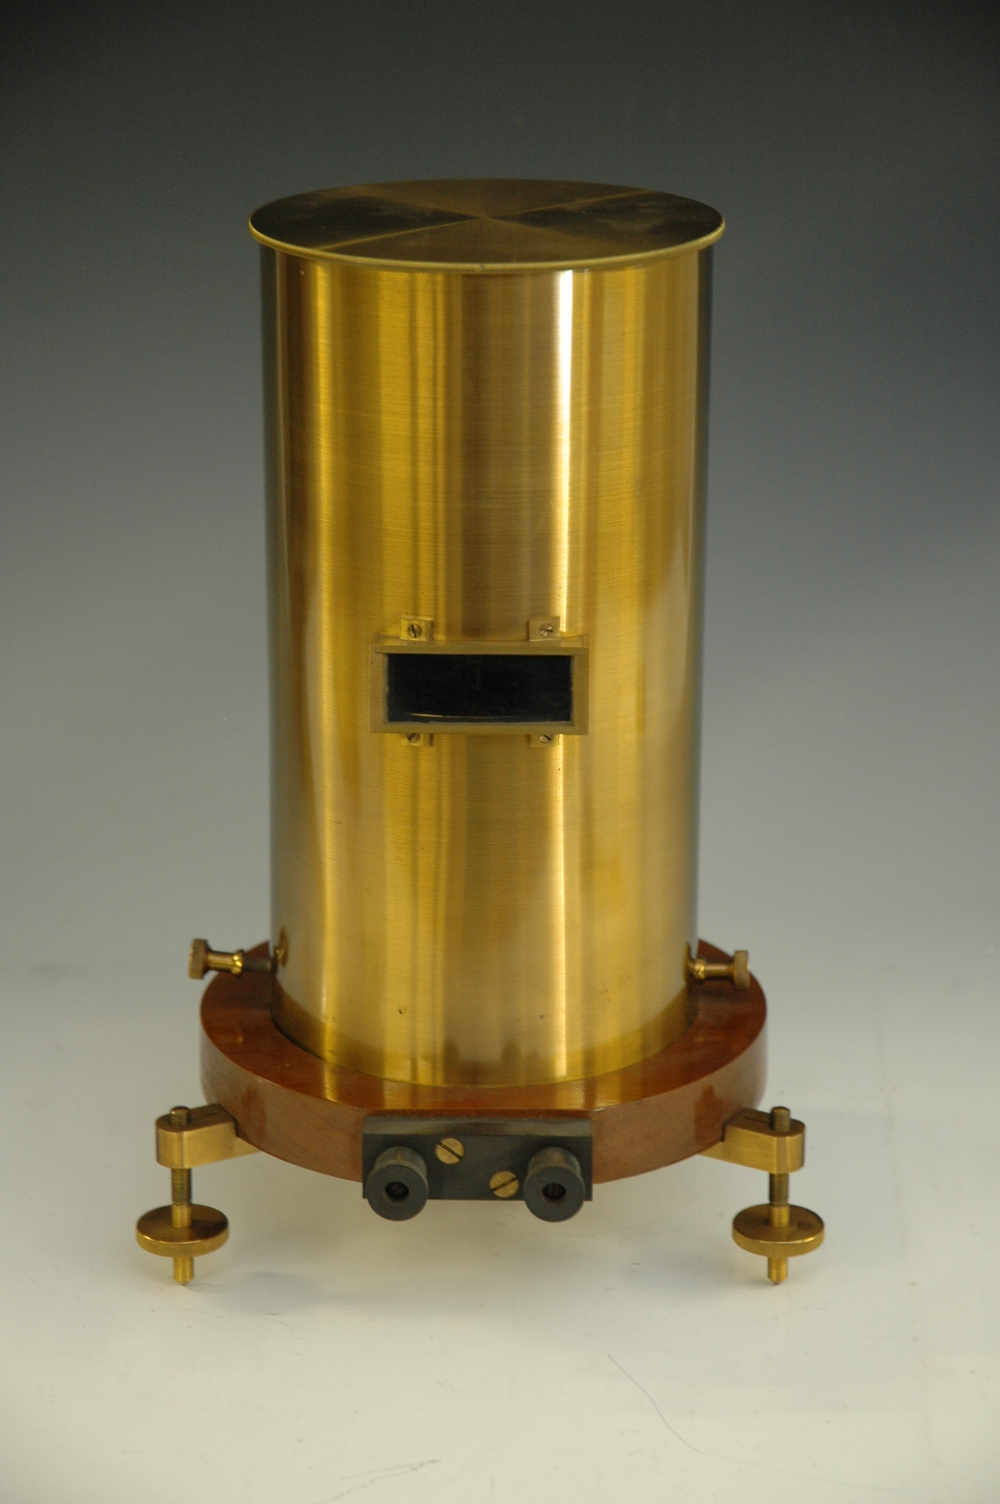 preview image for Reflecting Galvanometer, 1907?